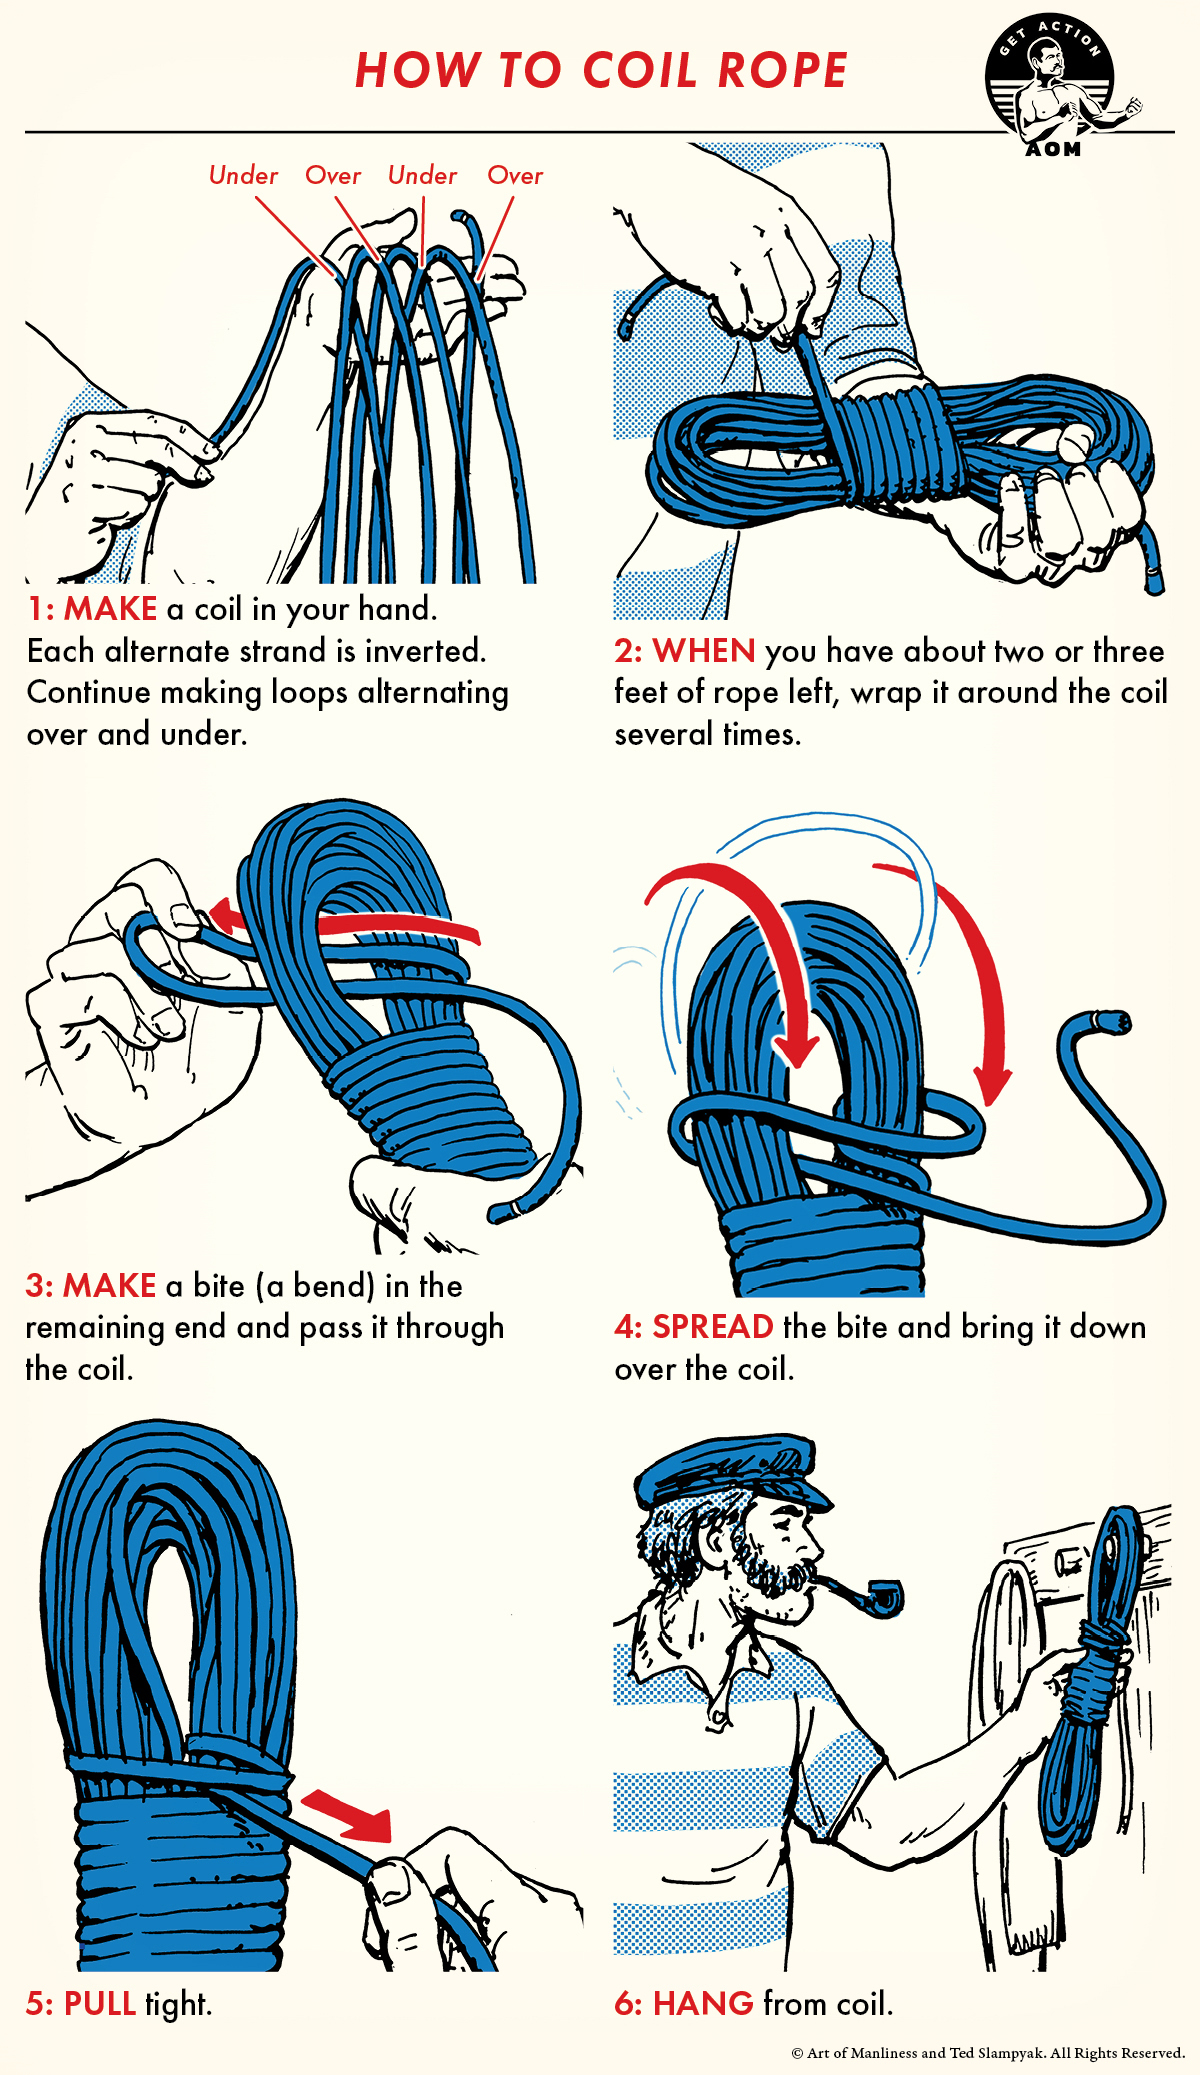 How to Coil Rope comic guid.